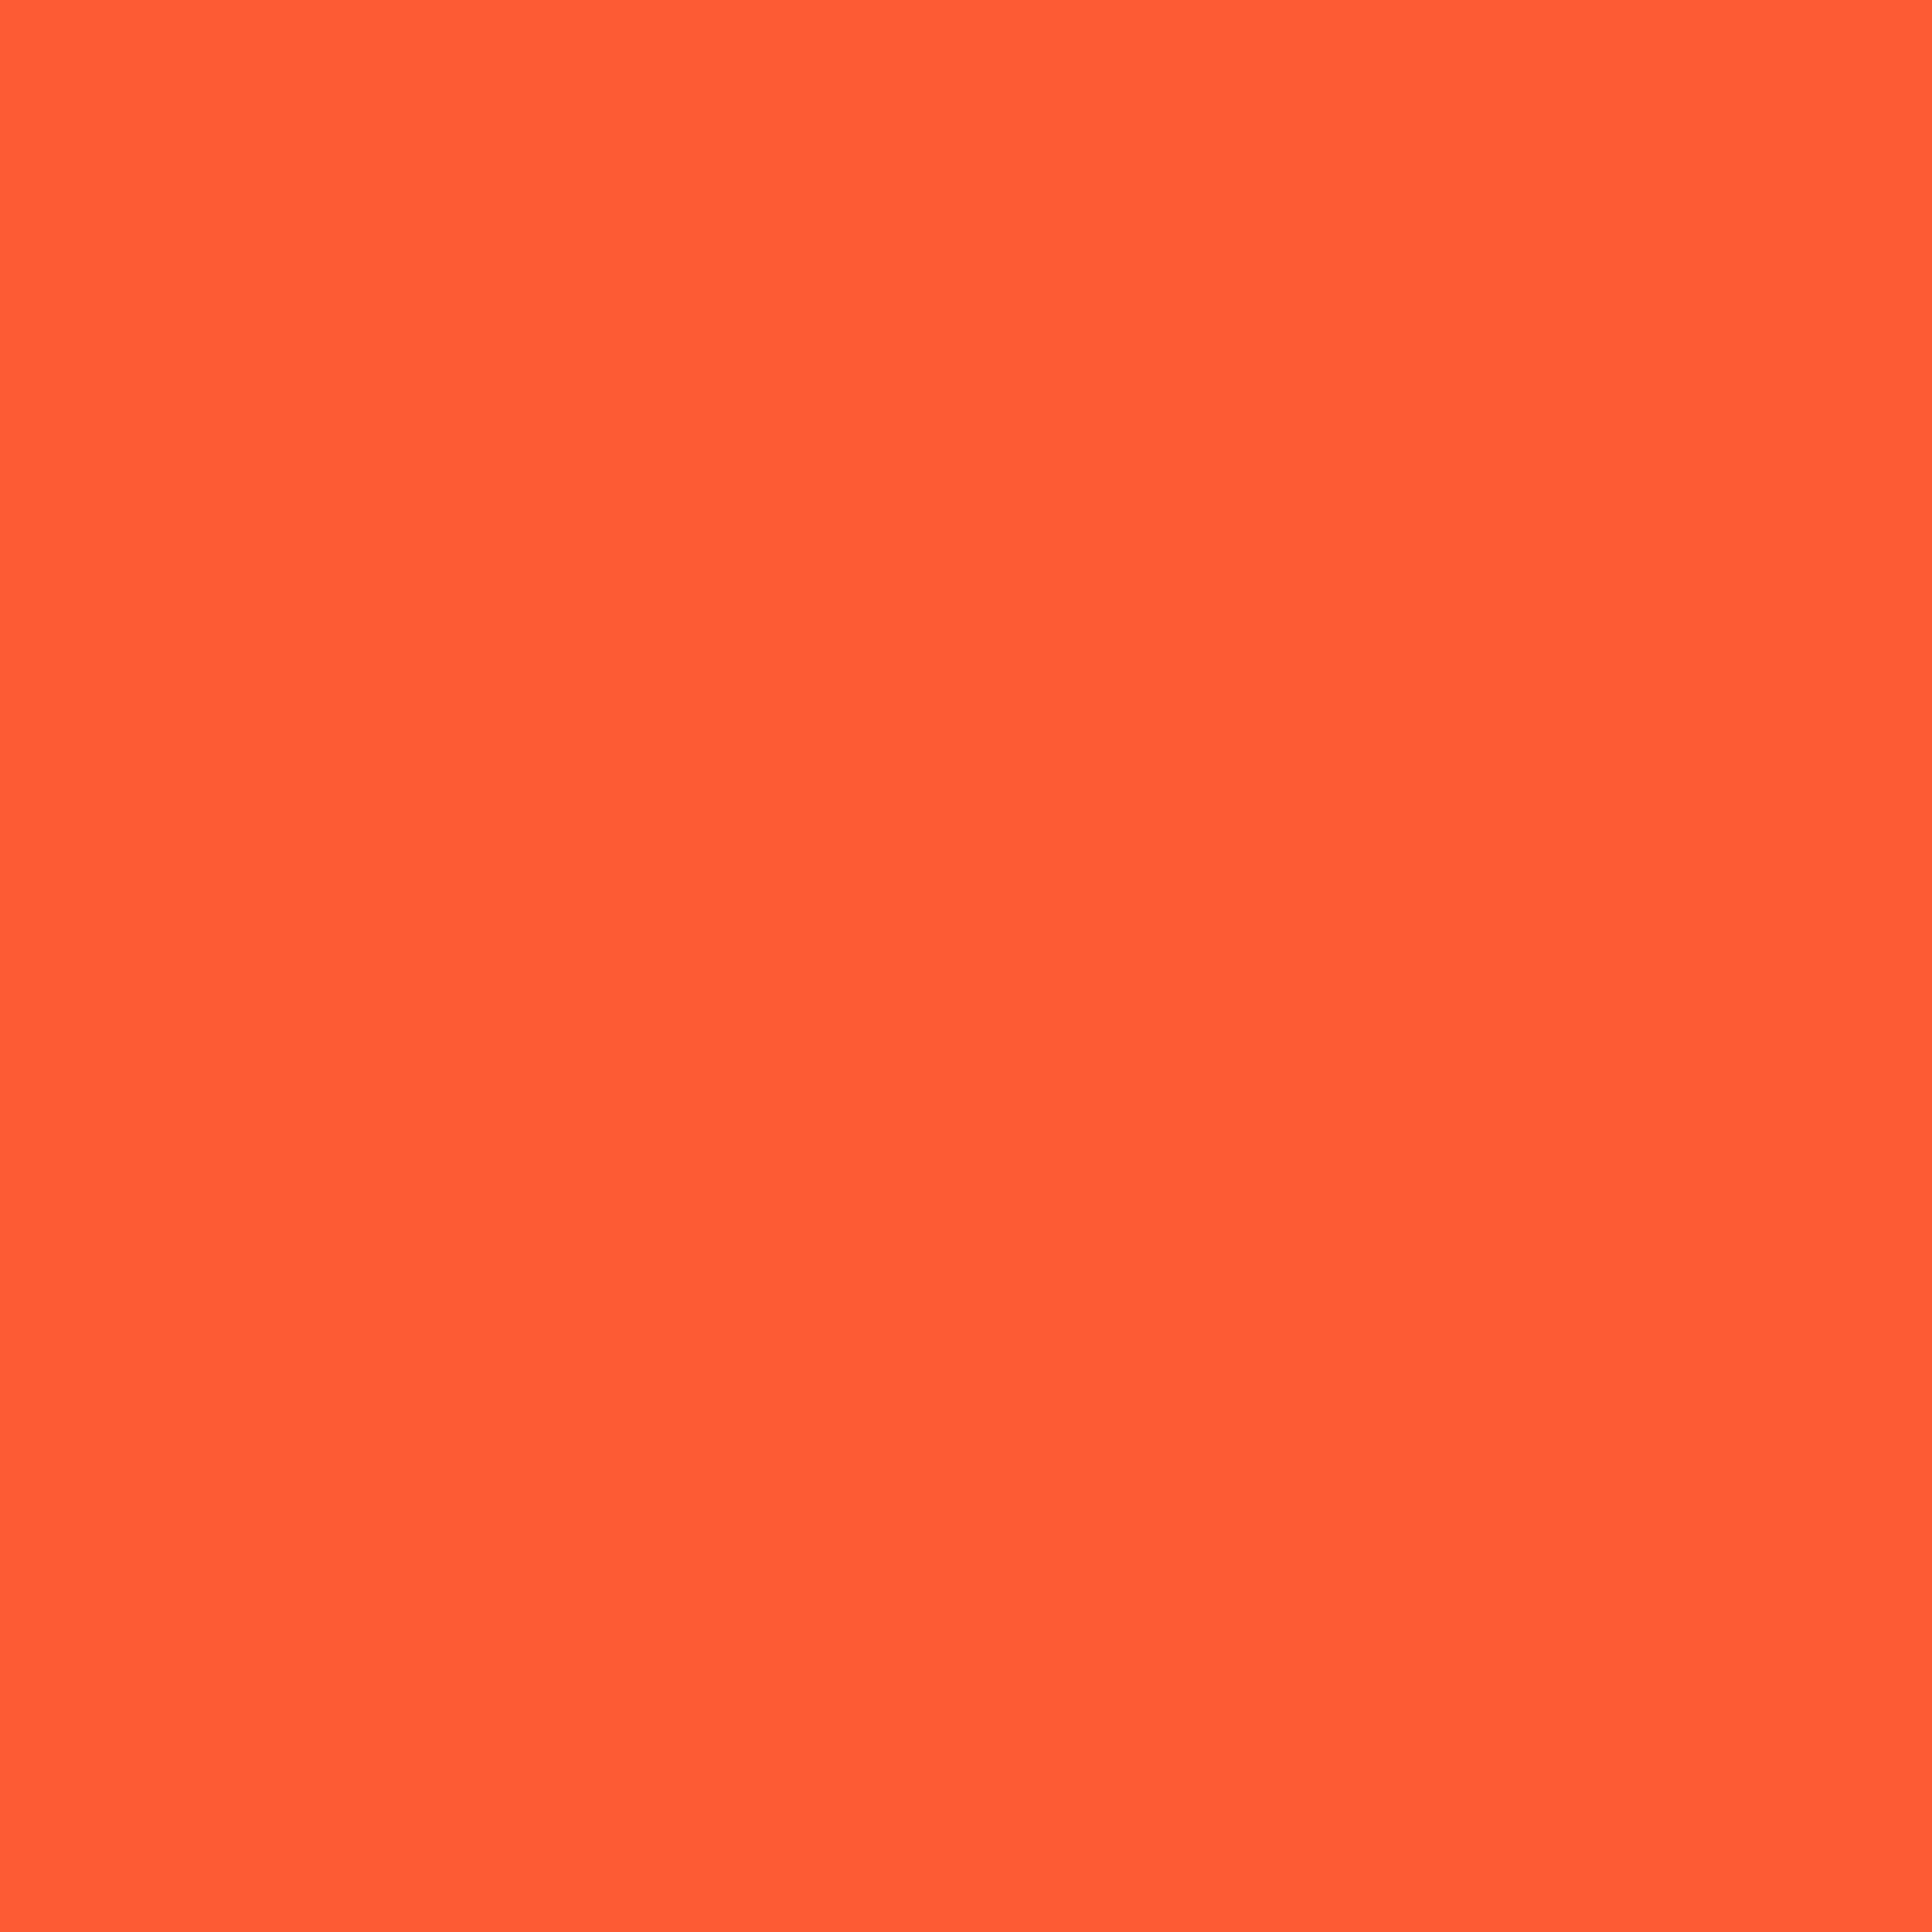 2048x2048 Portland Orange Solid Color Background